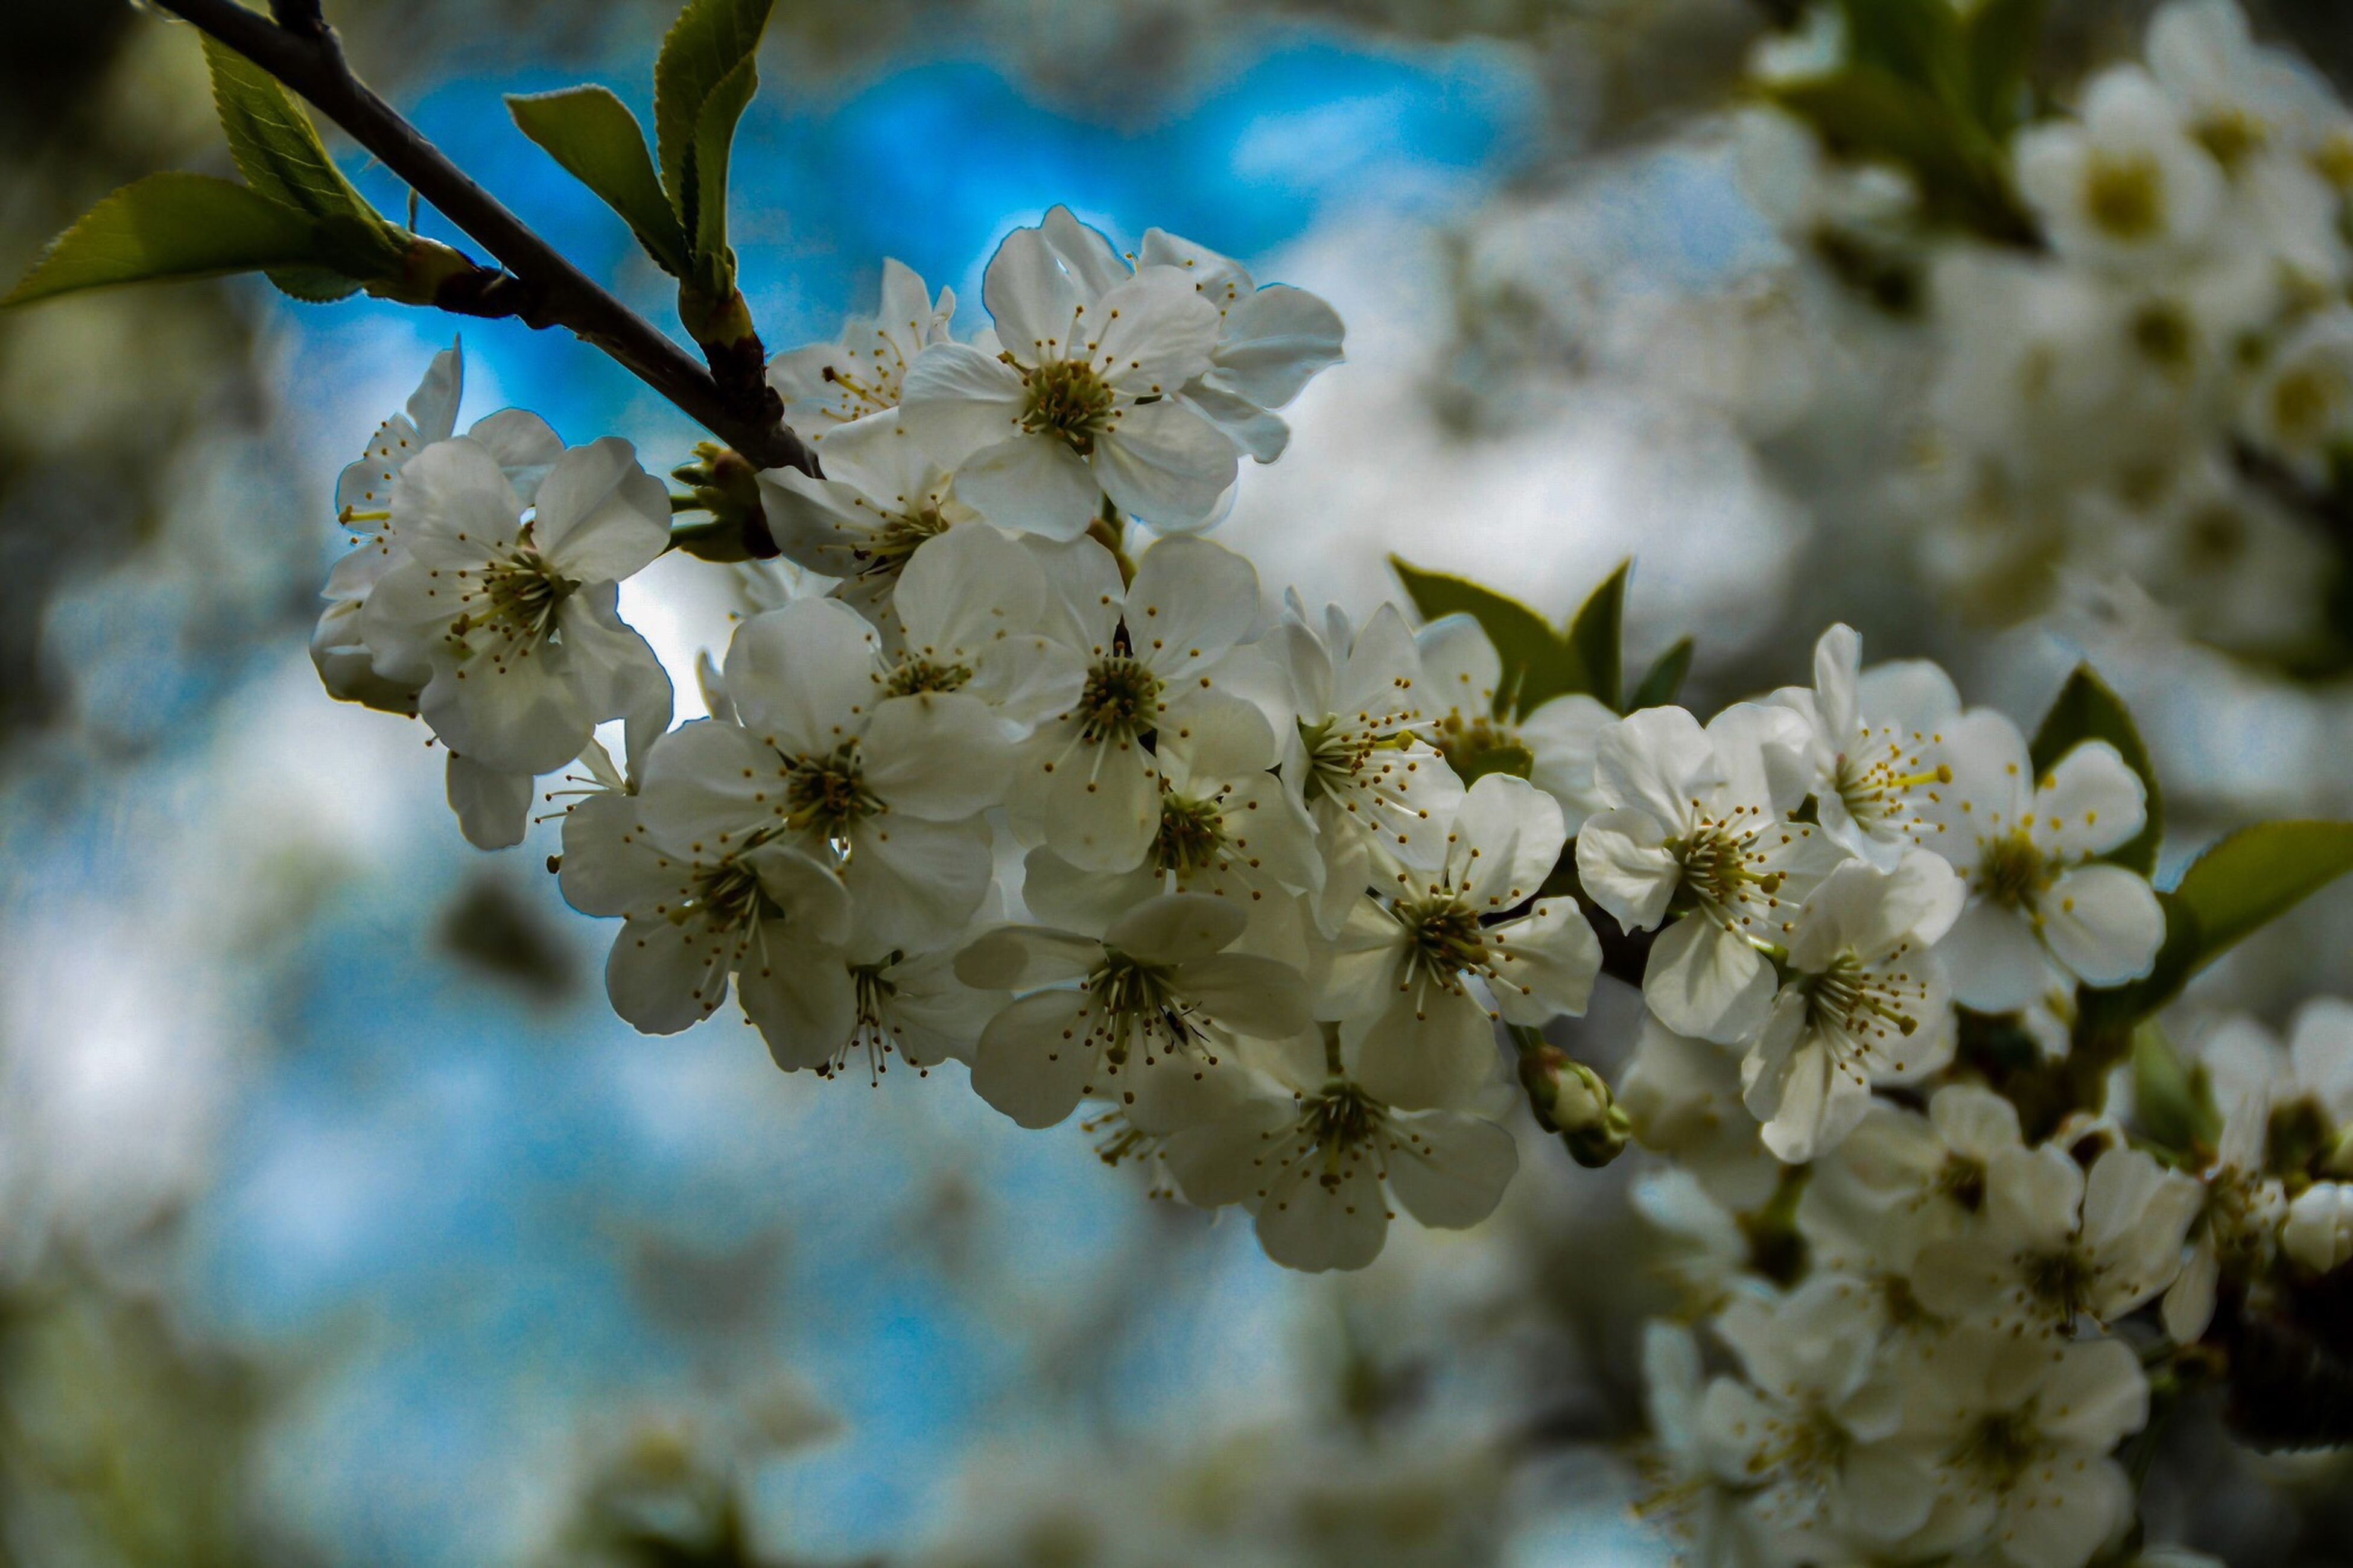 flower, freshness, growth, fragility, white color, beauty in nature, cherry blossom, branch, focus on foreground, close-up, nature, petal, tree, blossom, cherry tree, in bloom, blooming, flower head, twig, apple blossom